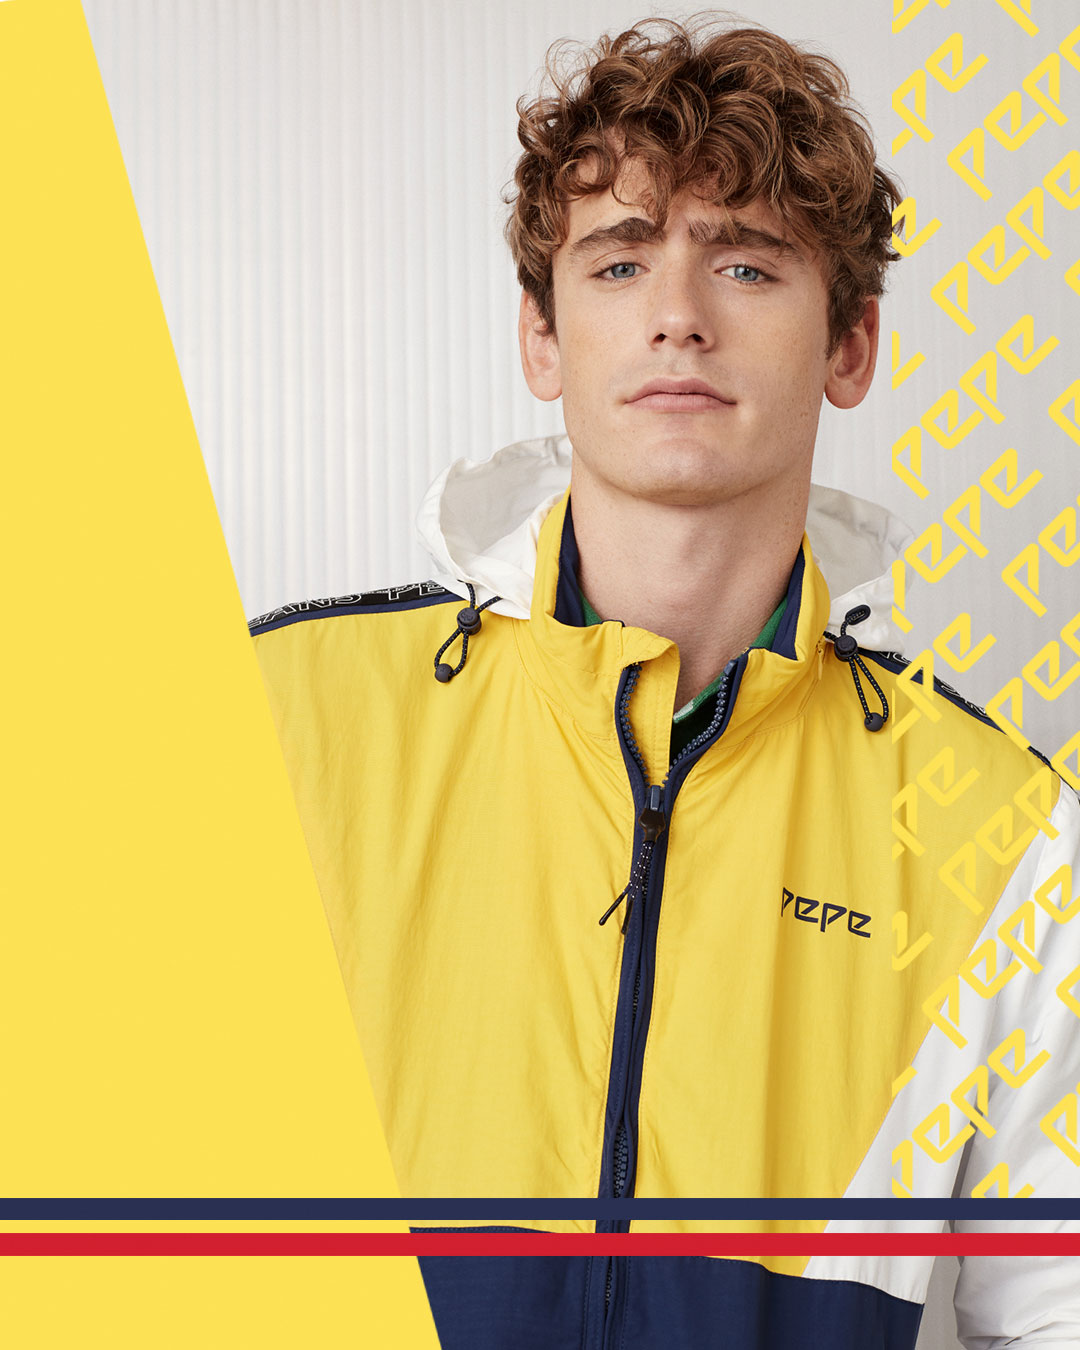 Pepe a new generation by Pepe Jeans